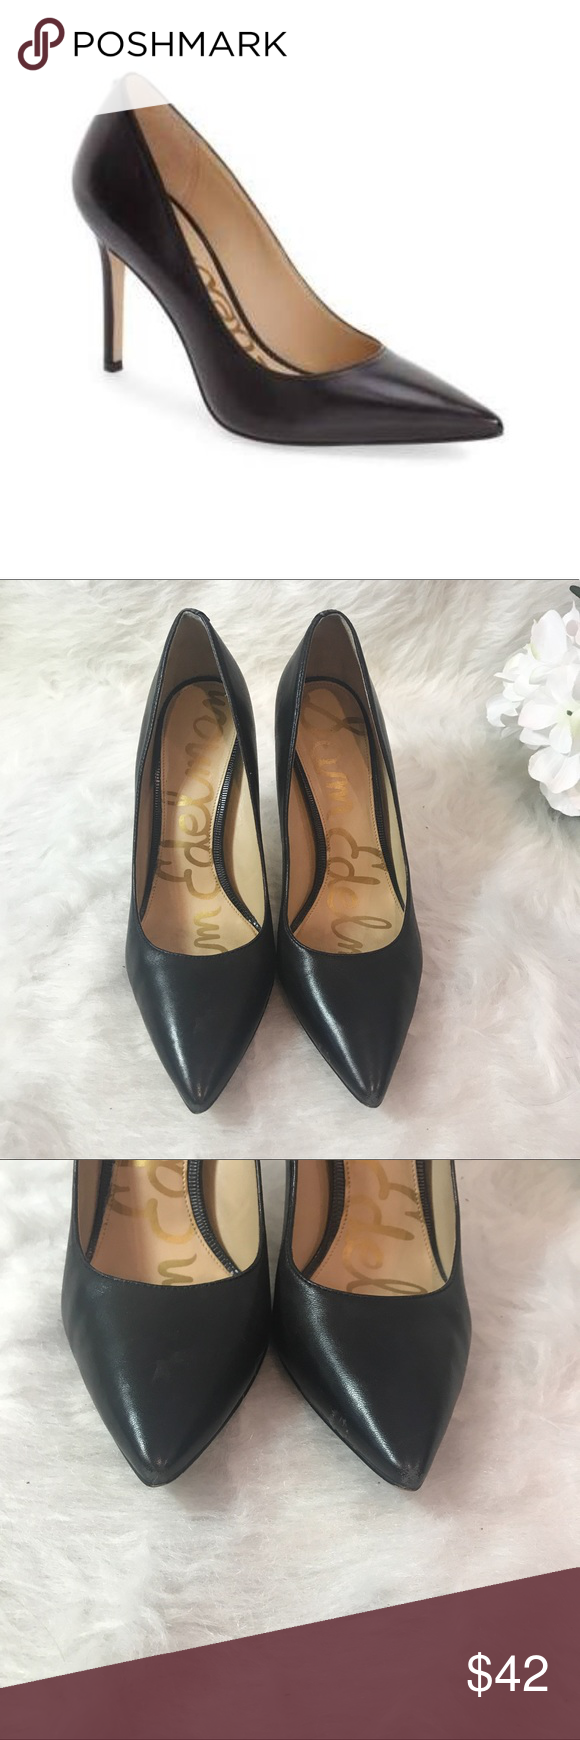 7a3bd7c9ef91 Sam Edelman Hazel Black Leather Pumps A classic stiletto adds leg-lengthening  lift and timeless appeal to an elegant pointy-toe pump. In good condition!